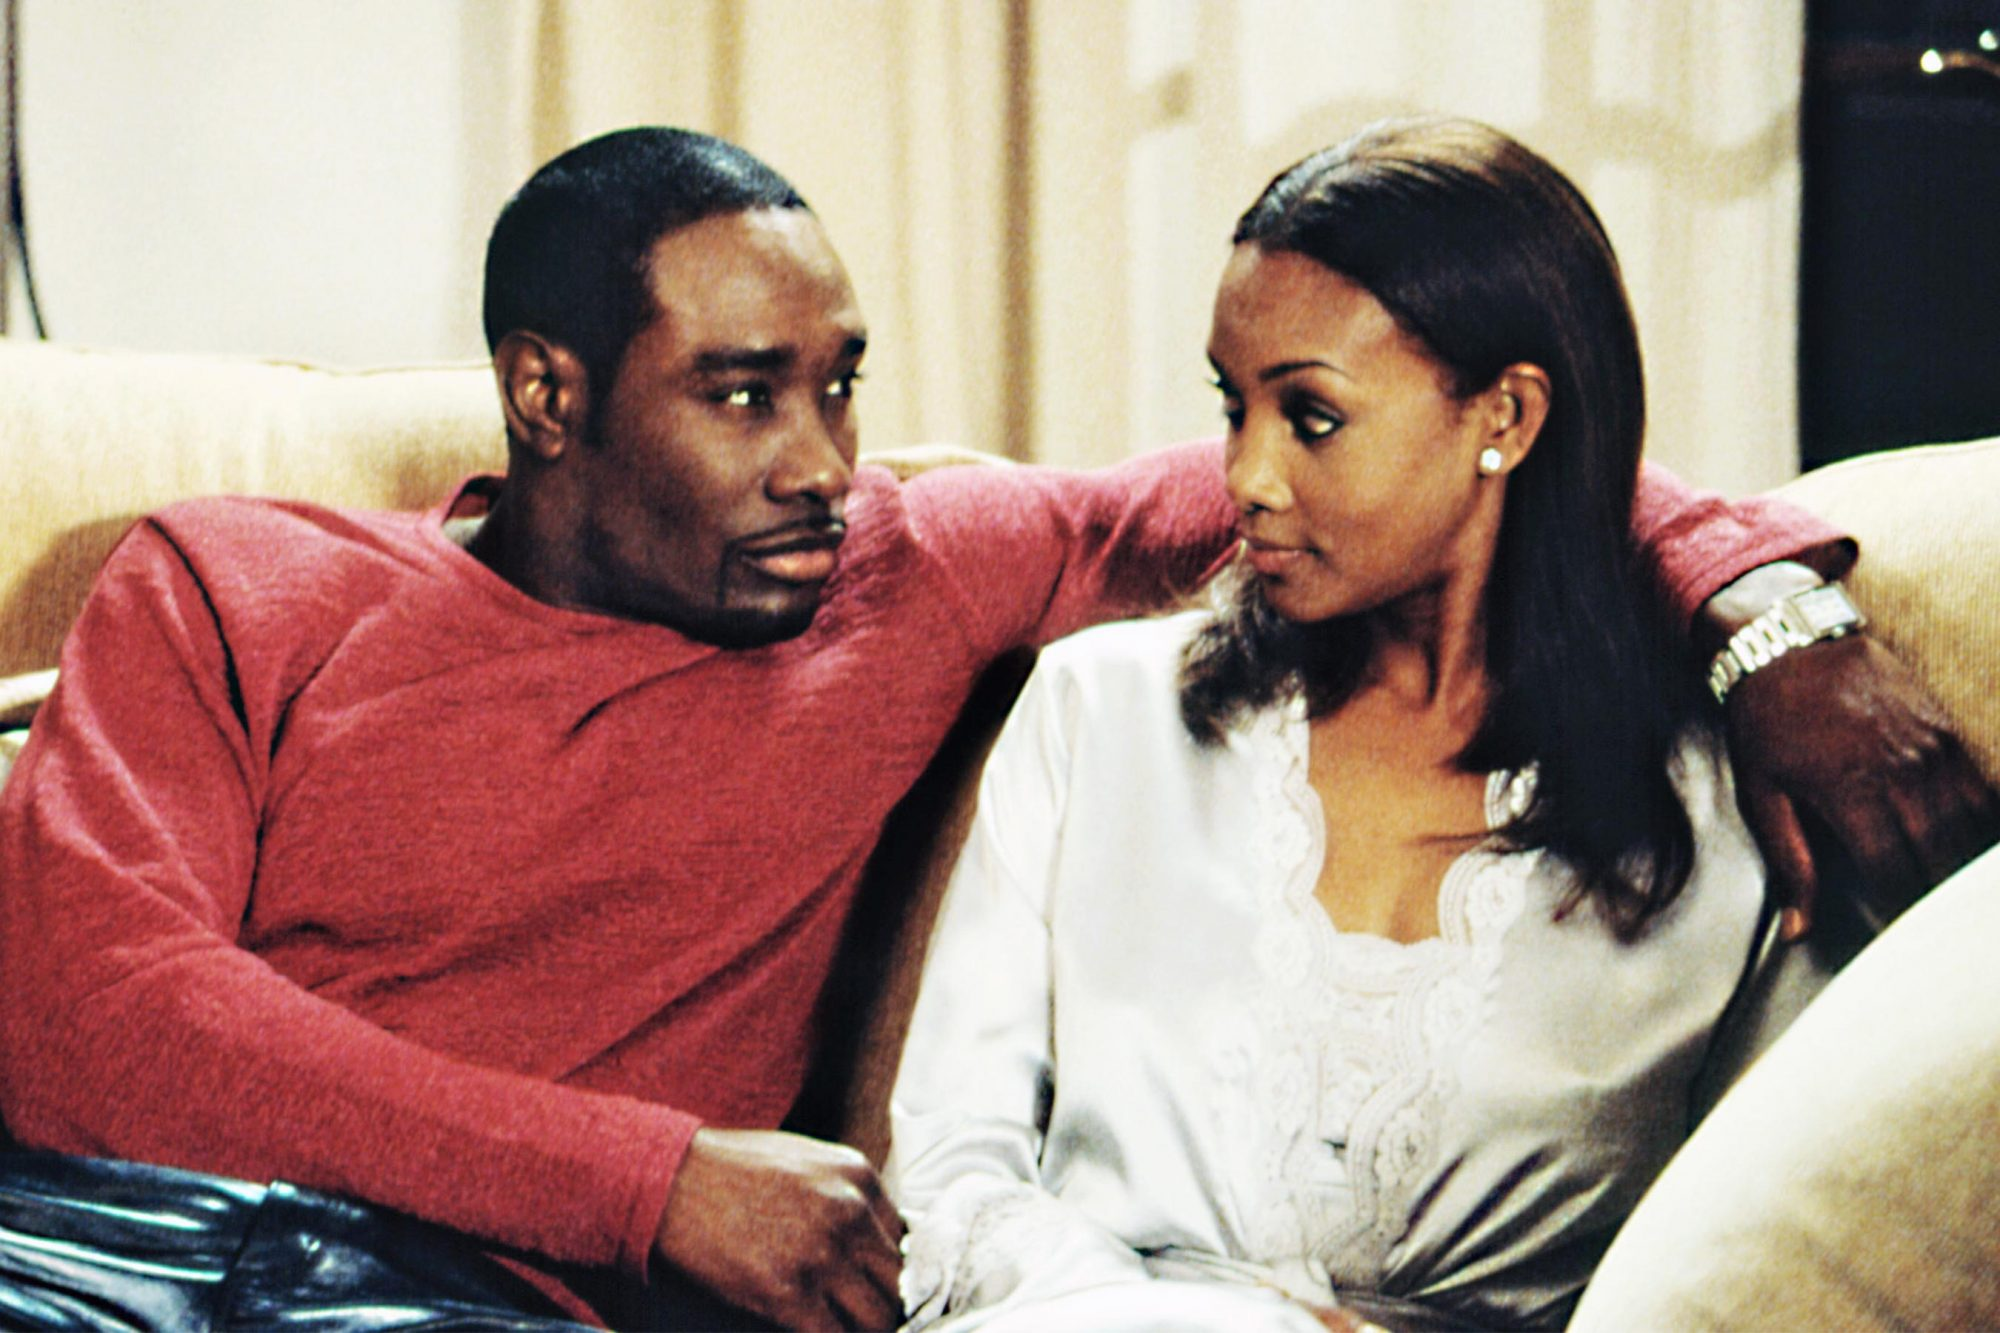 TWO CAN PLAY THAT GAME, Morris Chestnut, Vivica A. Fox, 2001